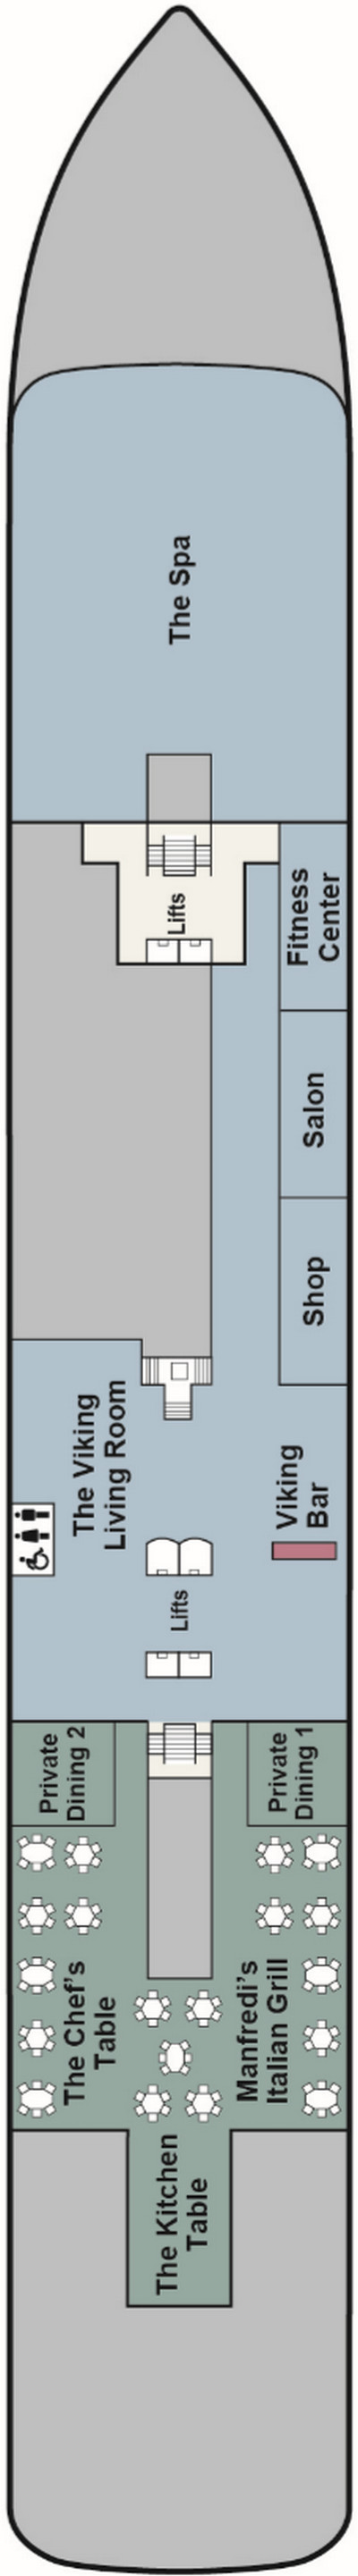 Viking Orion Deck 1 layout